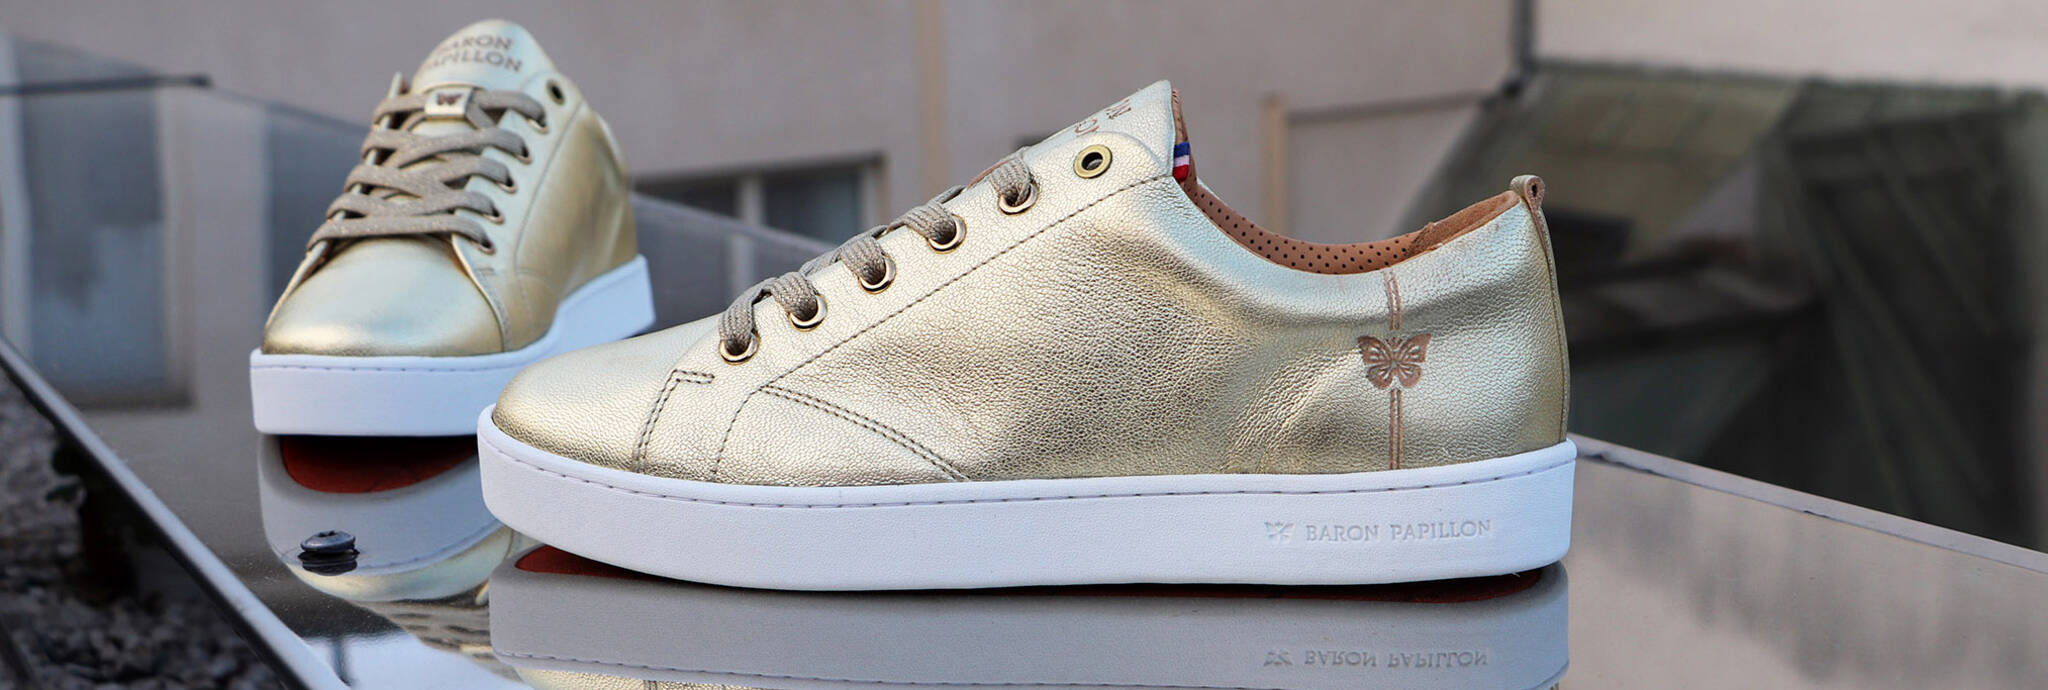 Sneakers de luxe made in France